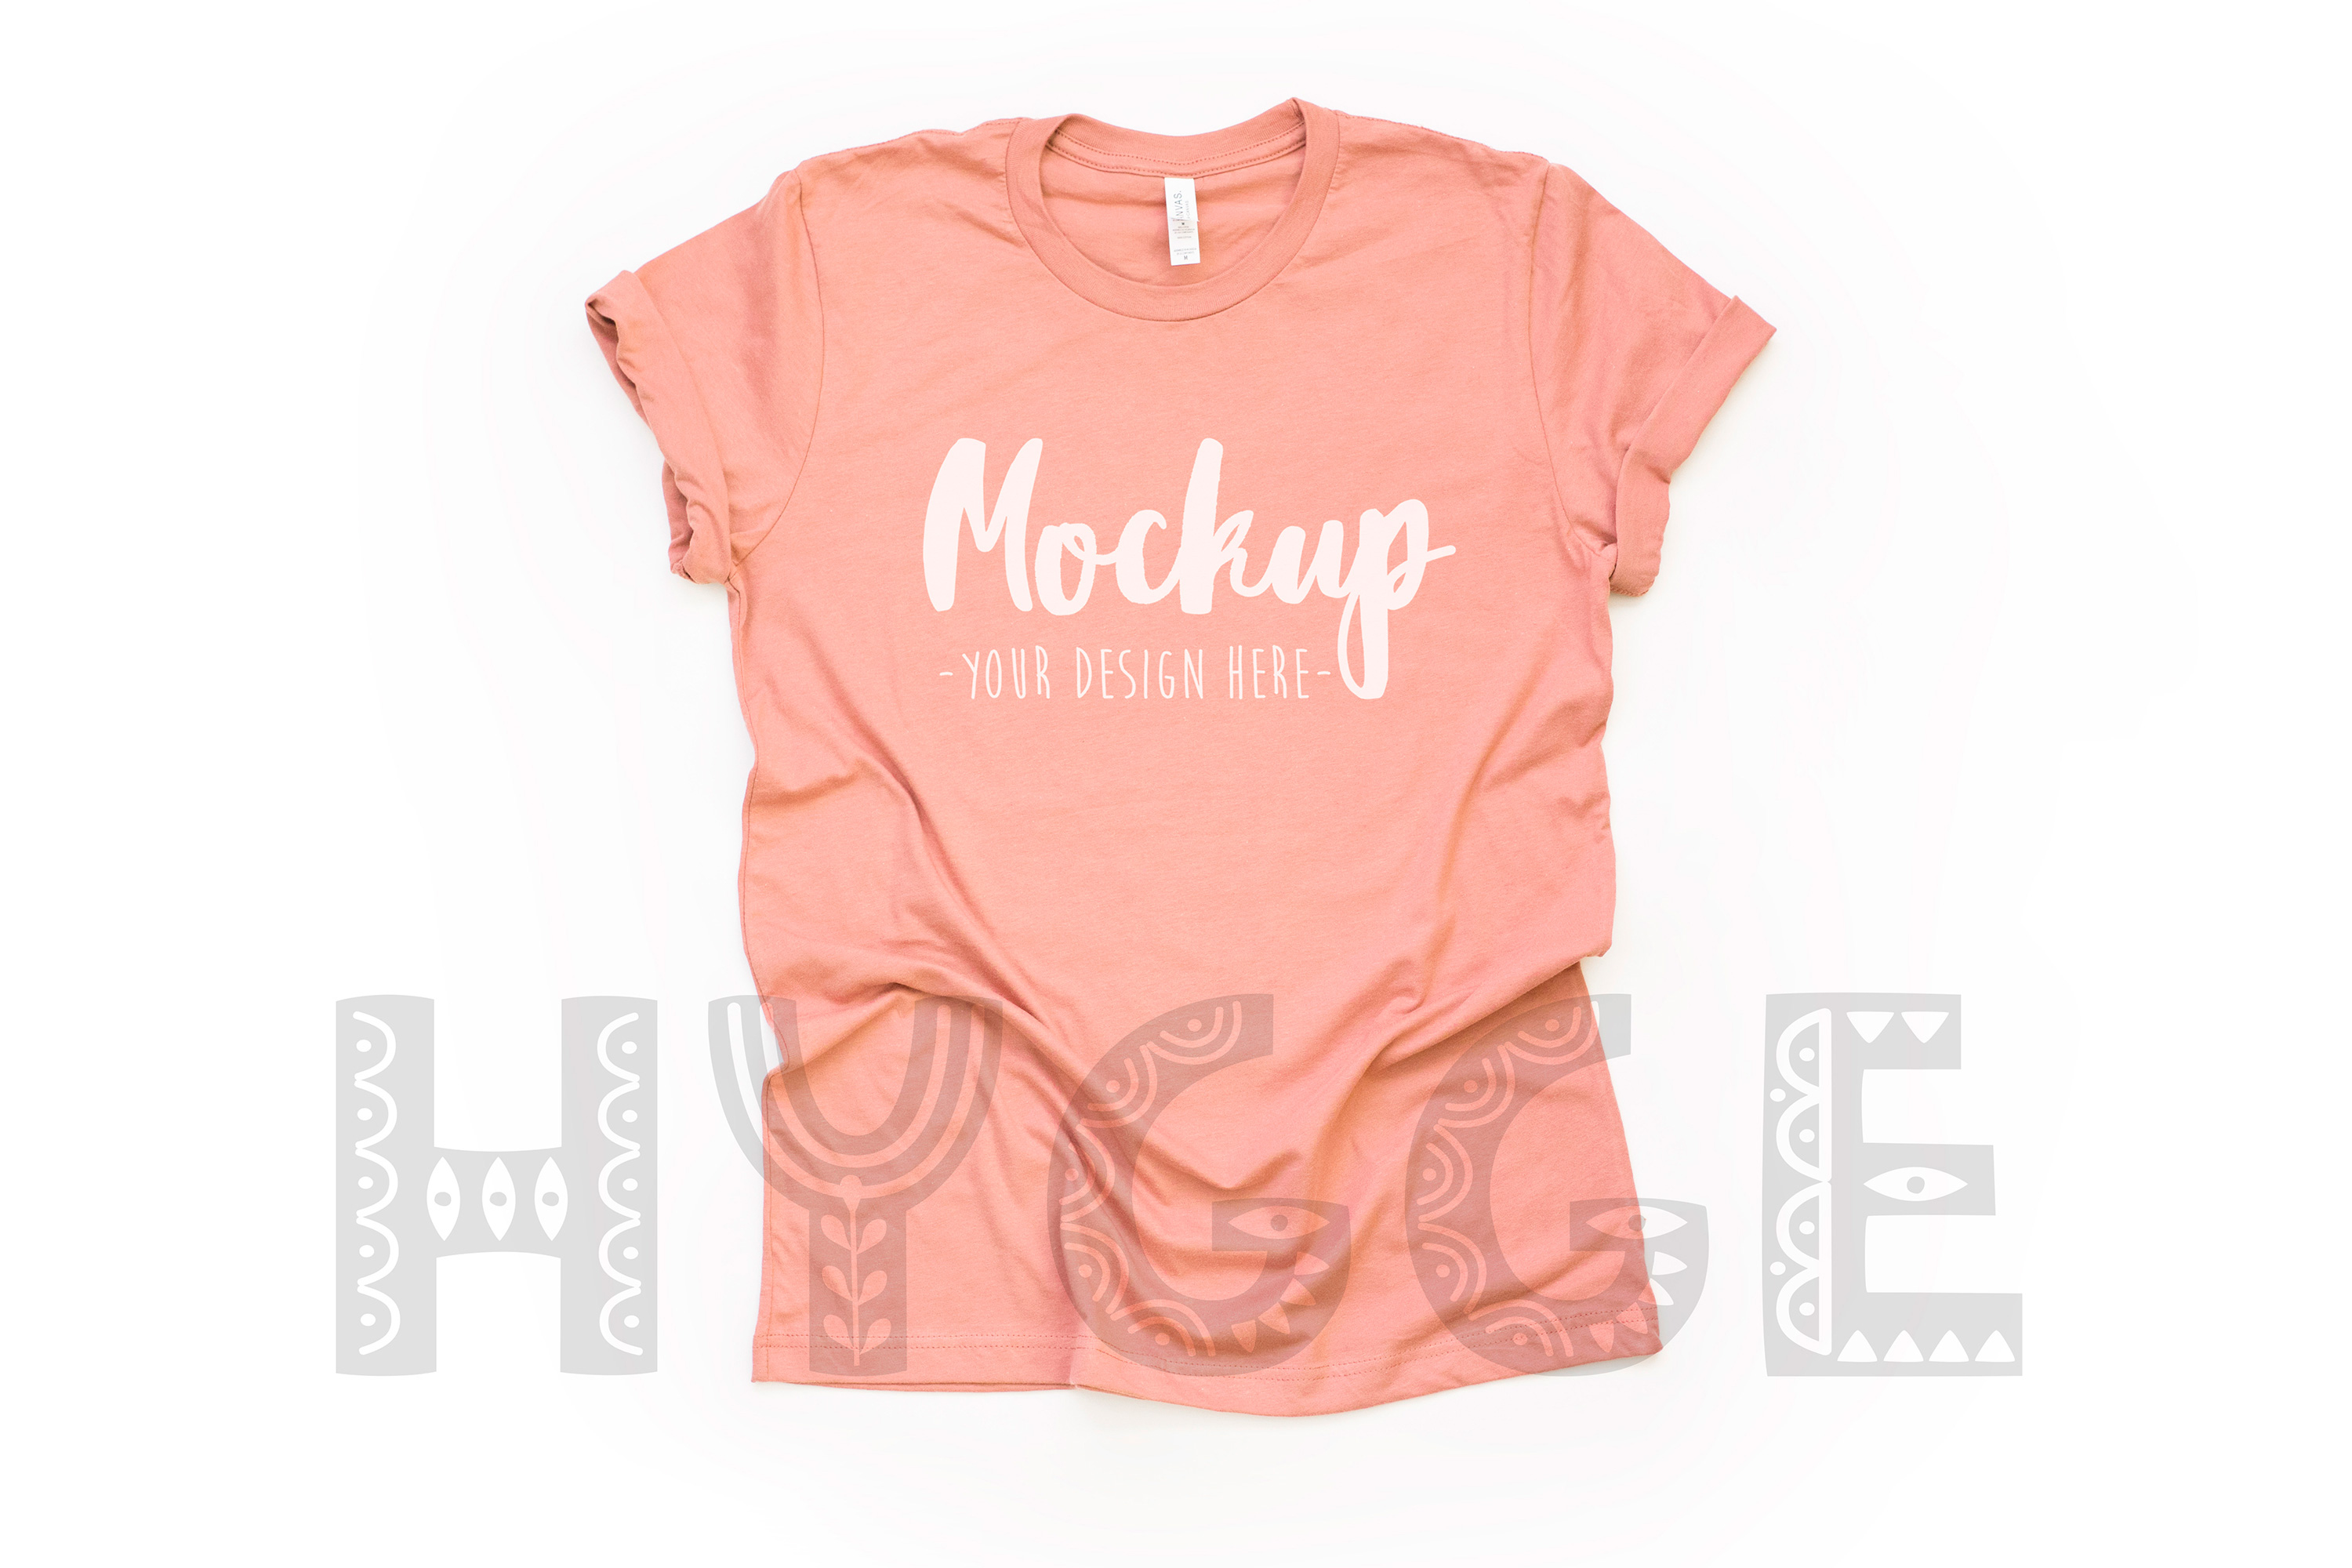 Tshirt Mockup Bundle Bella Canvas 3001 Basic tshirt mockups example image 28